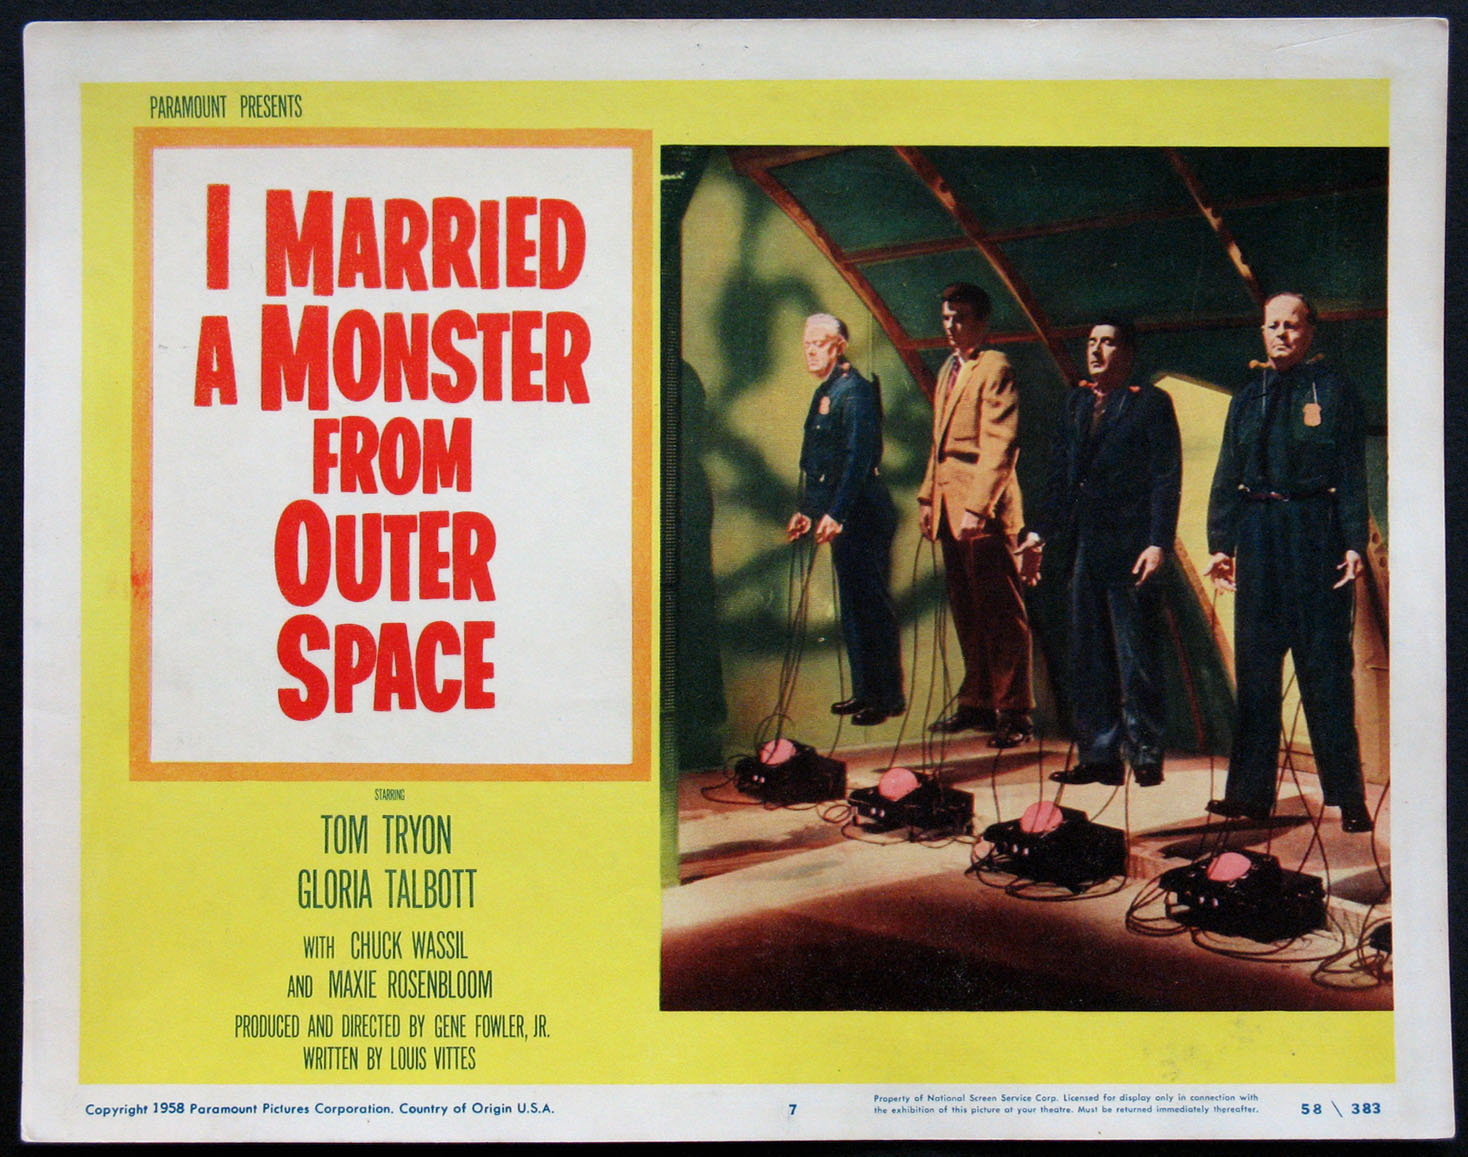 I MARRIED A MONSTER FROM OUTER SPACE @ FilmPosters.com